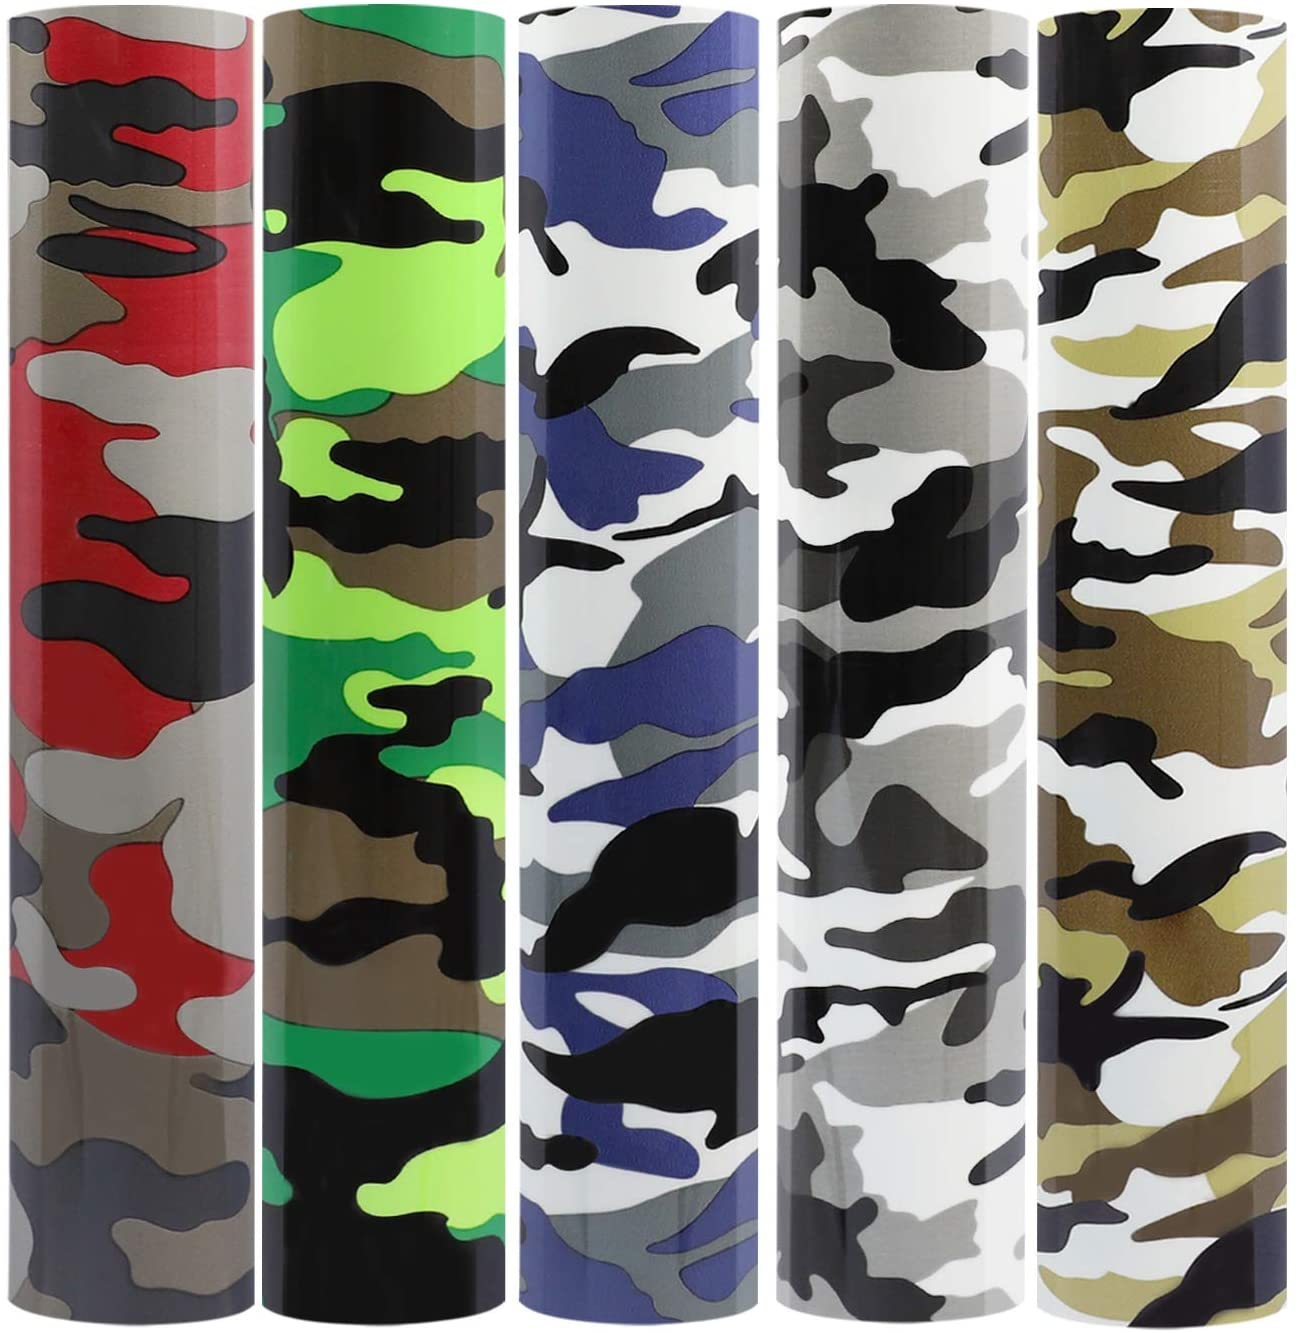 Camouflage Heat Transfer Vinyl Bundle/Camo Iron on Vinyl 12 inches by 12 inches,5 Sheets for DIY Shirt and die-Cutter